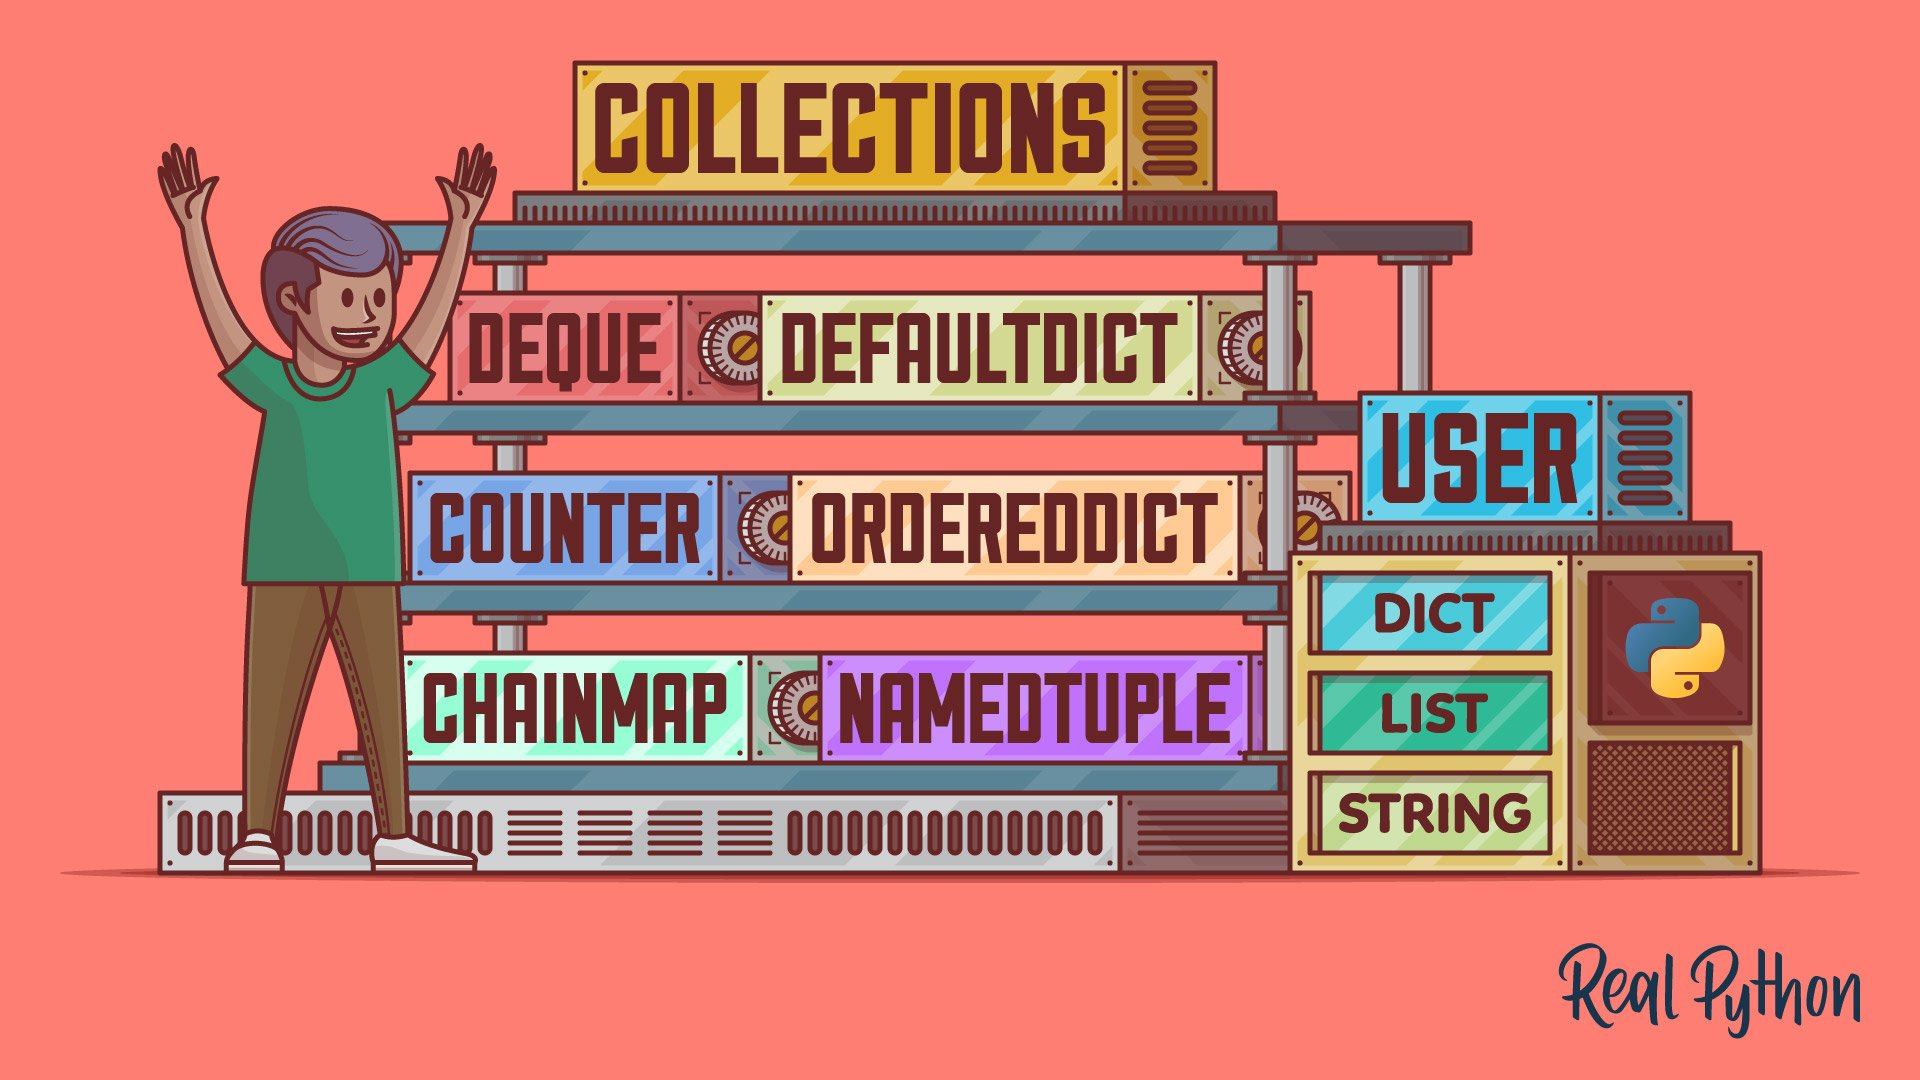 Python's collections: A Buffet of Specialized Data Types